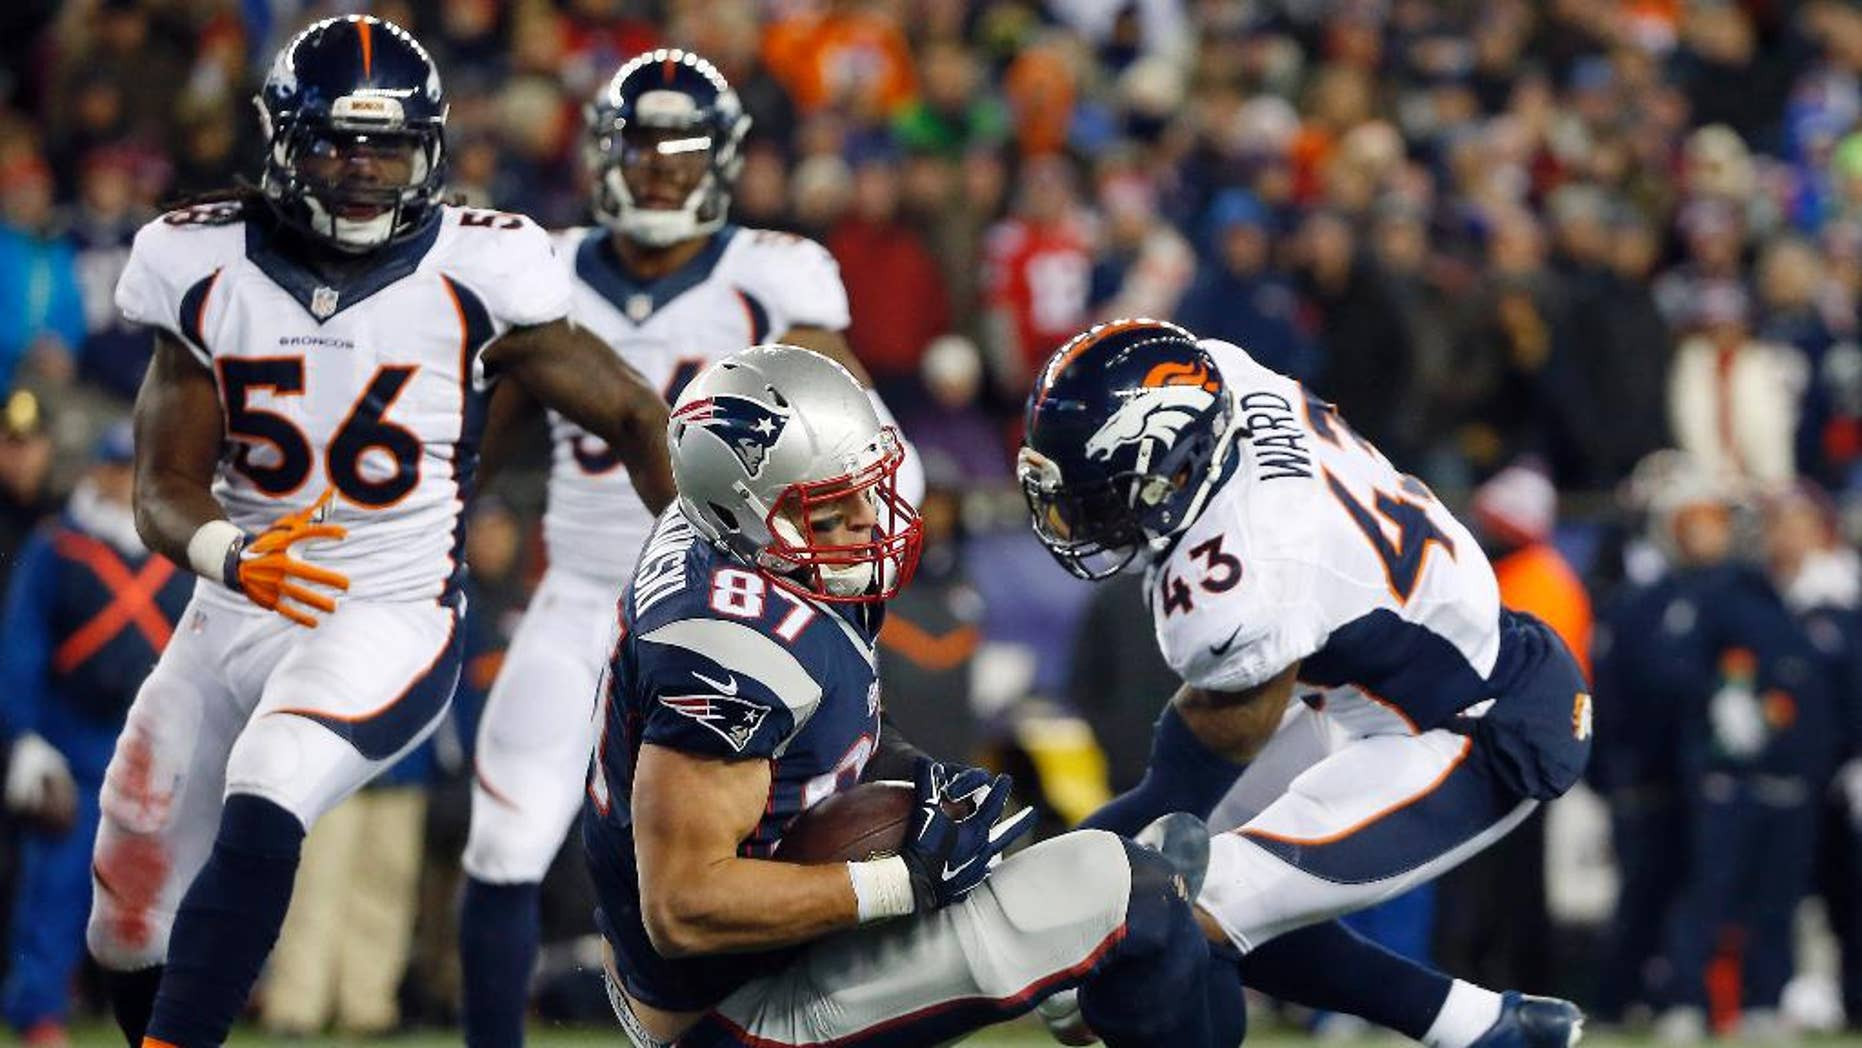 "FILE - In this Nov. 2, 2014, file photo, New England Patriots tight end Rob Gronkowski (87) lands between Denver Broncos middle linebacker Nate Irving (56) and strong safety T.J. Ward (43) after catching a pass in the fourth quarter of an NFL football game in Foxborough, Mass. Gronkowski's leaping, full-extension, one-handed, lefty grab of a pass from Tom Brady against the Broncos made perfectly clear that the man known as ""Gronk"" is back among the NFL's elite after a series of operations to his left forearm, his right knee and his back. (AP Photo/Elise Amendola, File)"